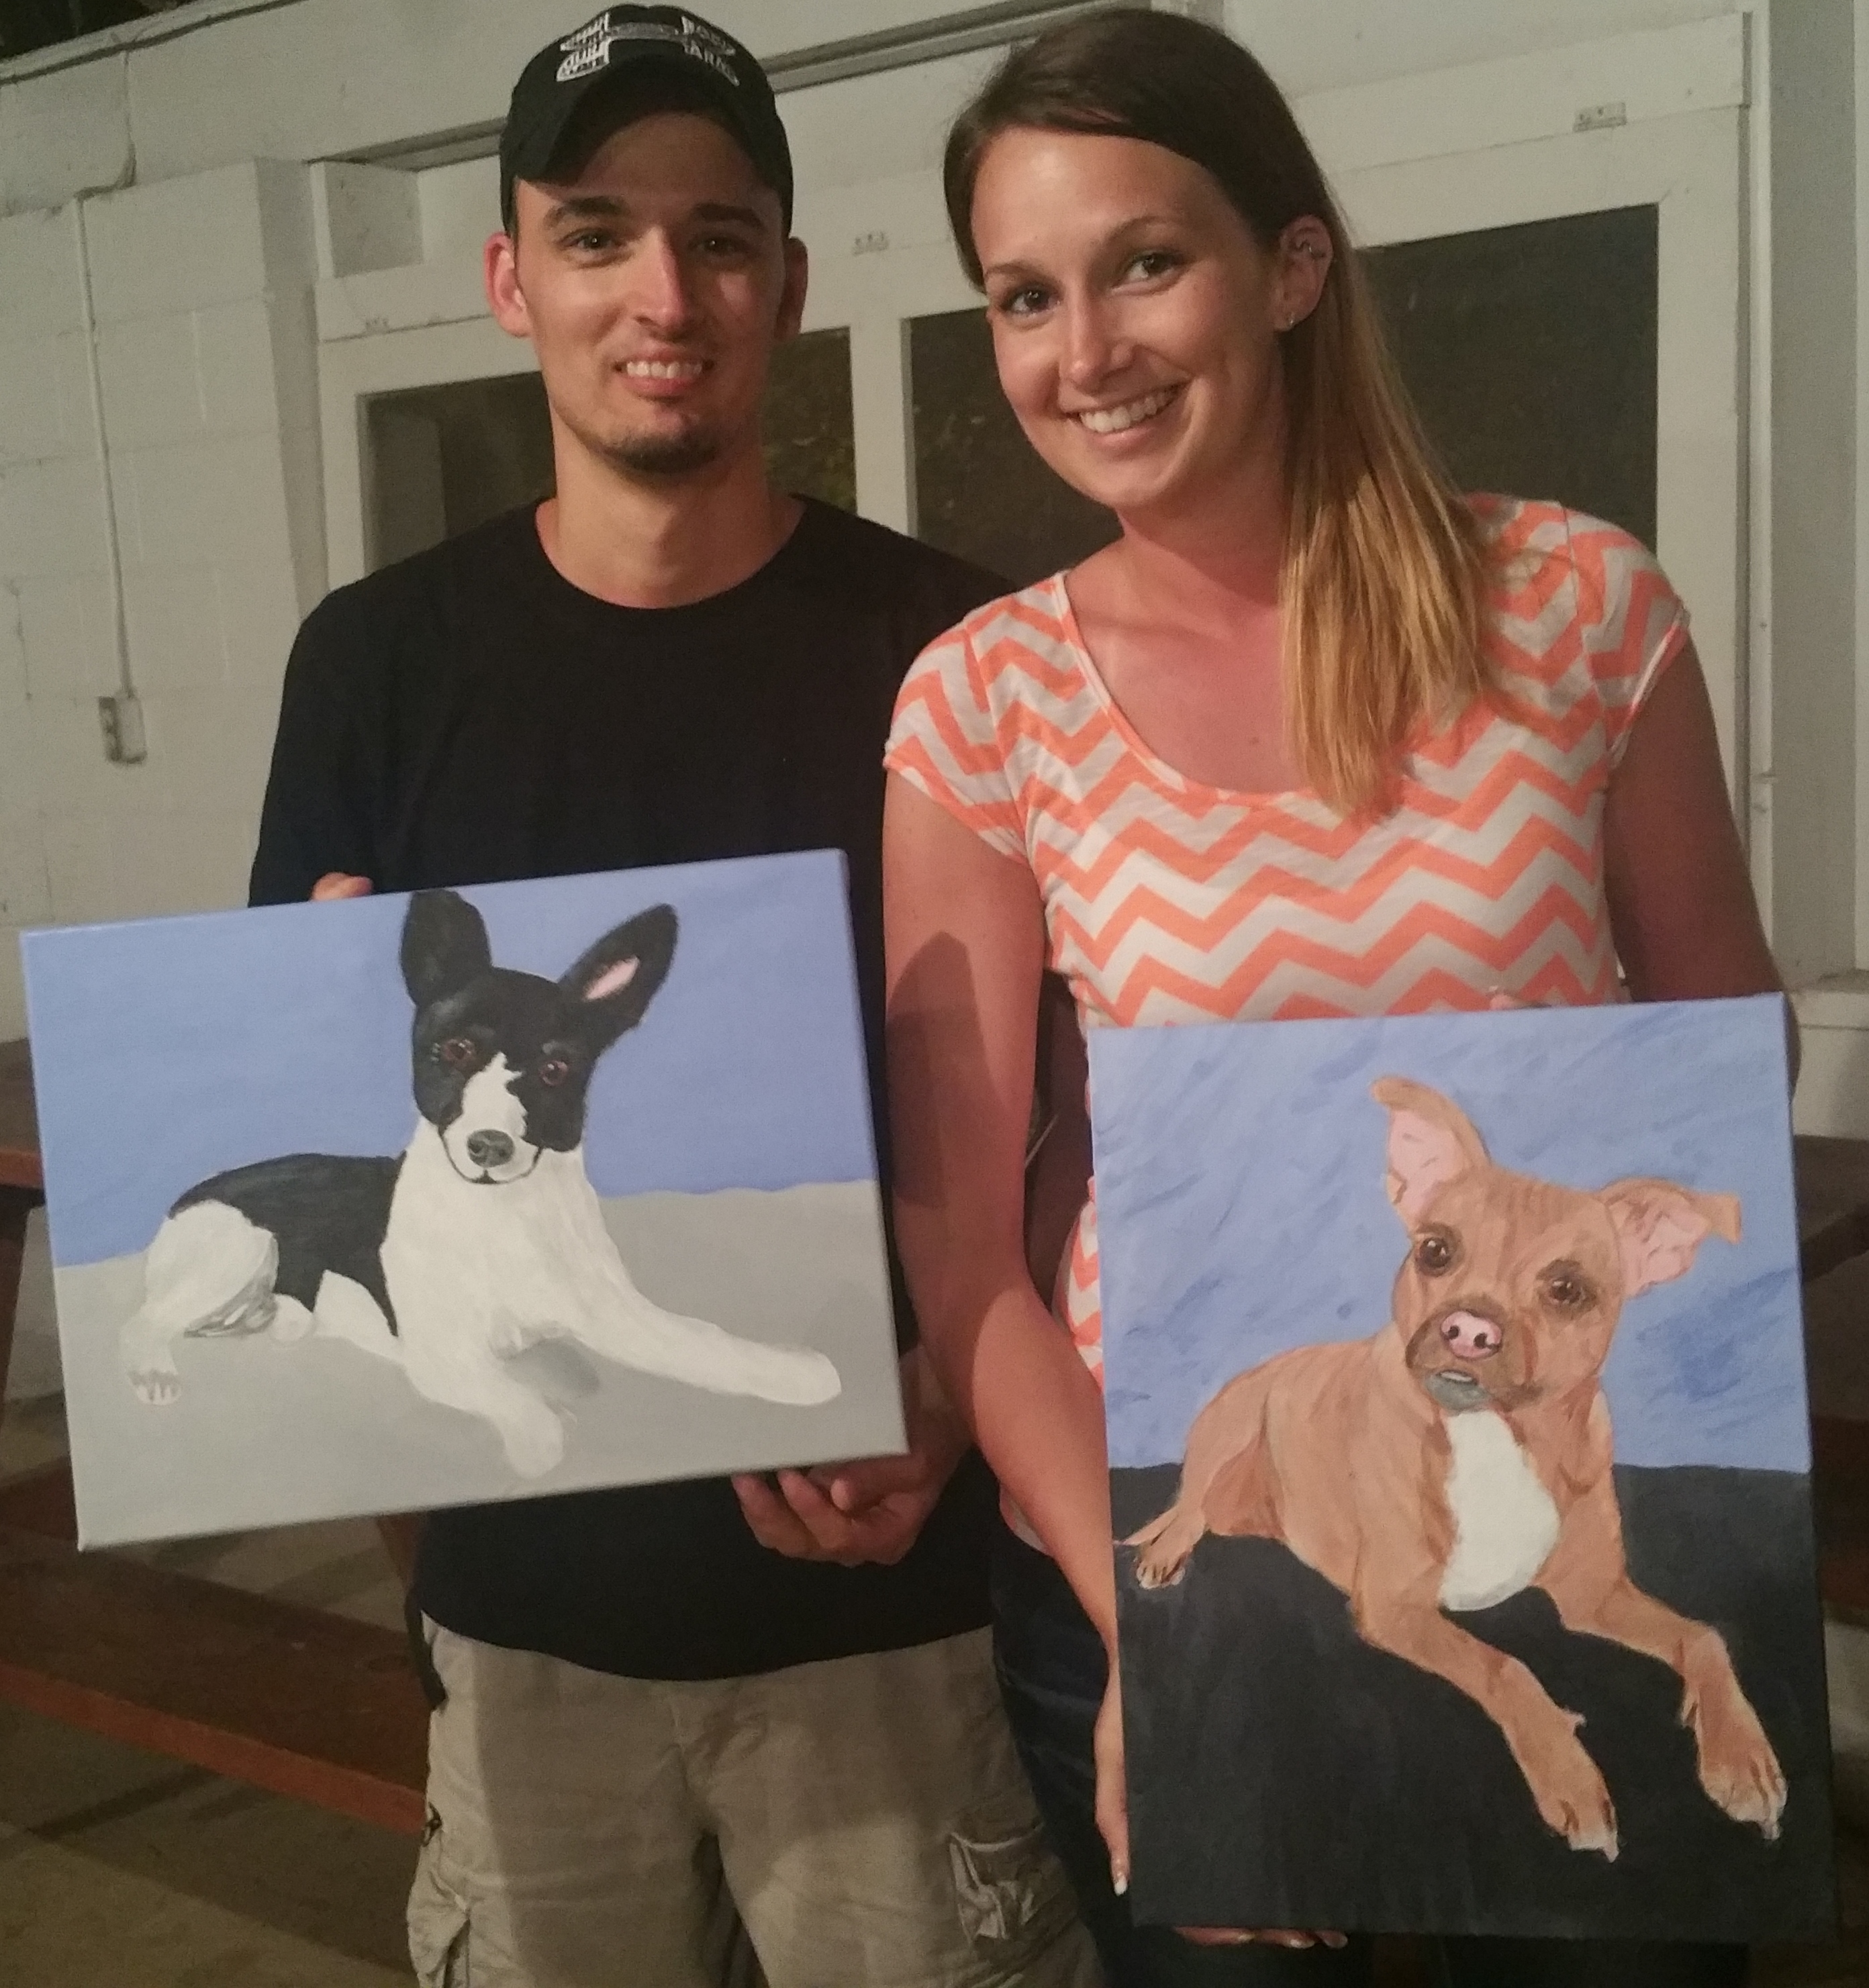 Painting Paws benefits The Humane Society of Kent County, MD